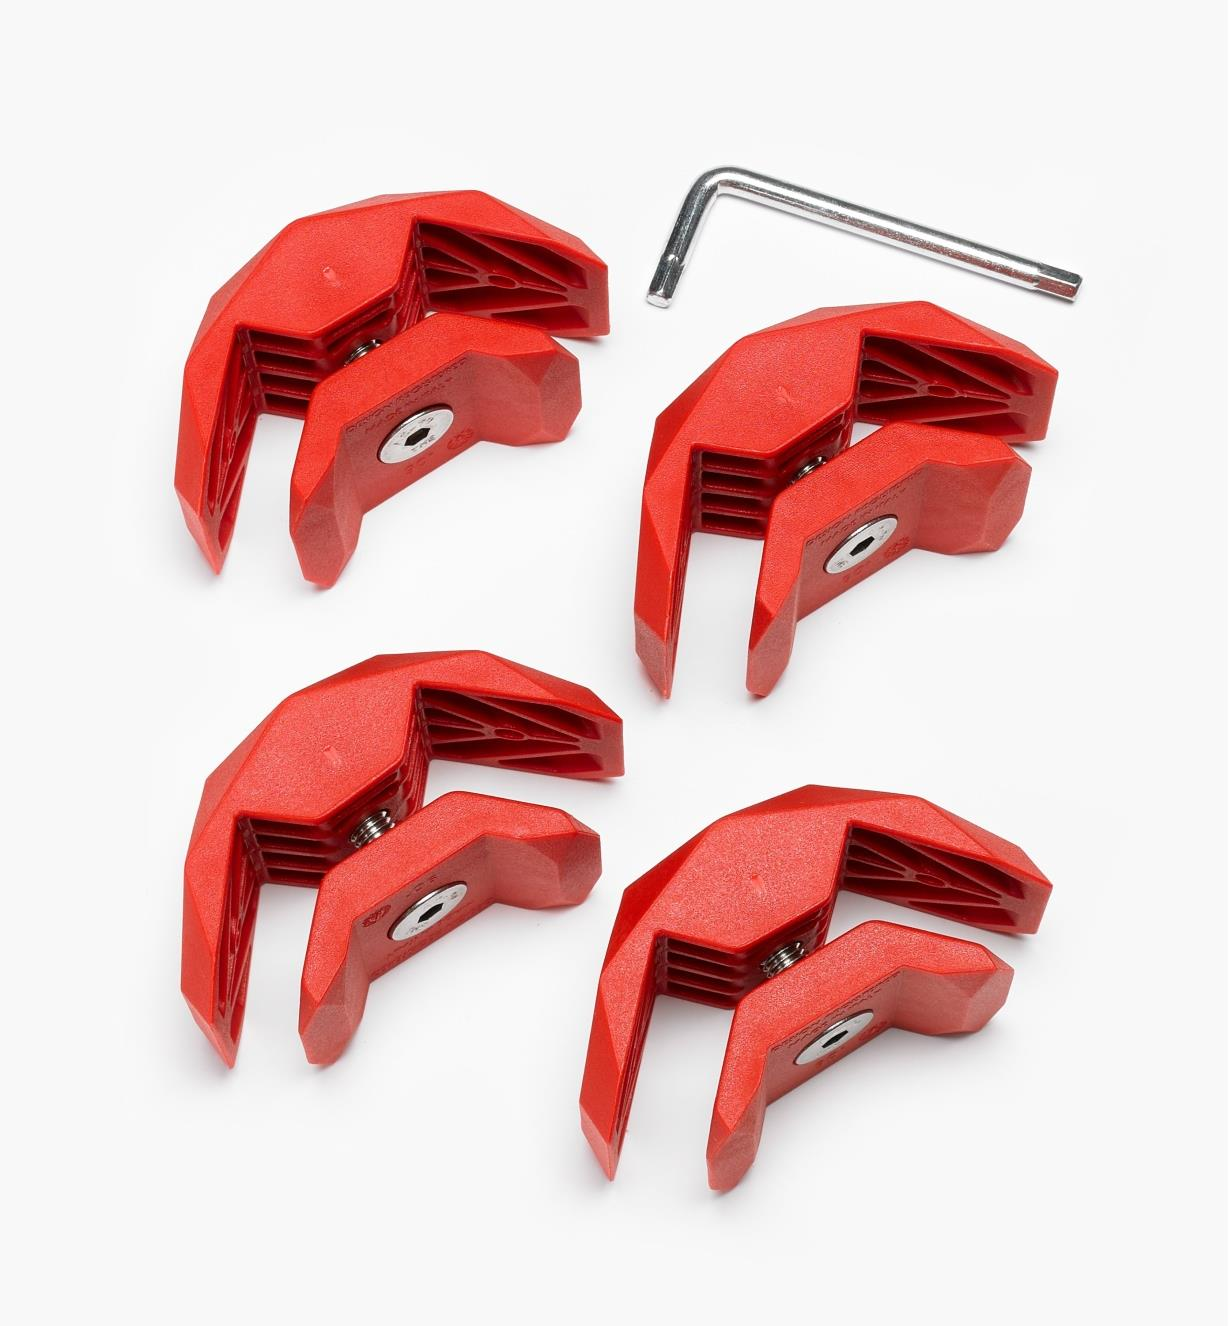 01S1980 - 90° Red Playwood Connectors, pkg. of 4